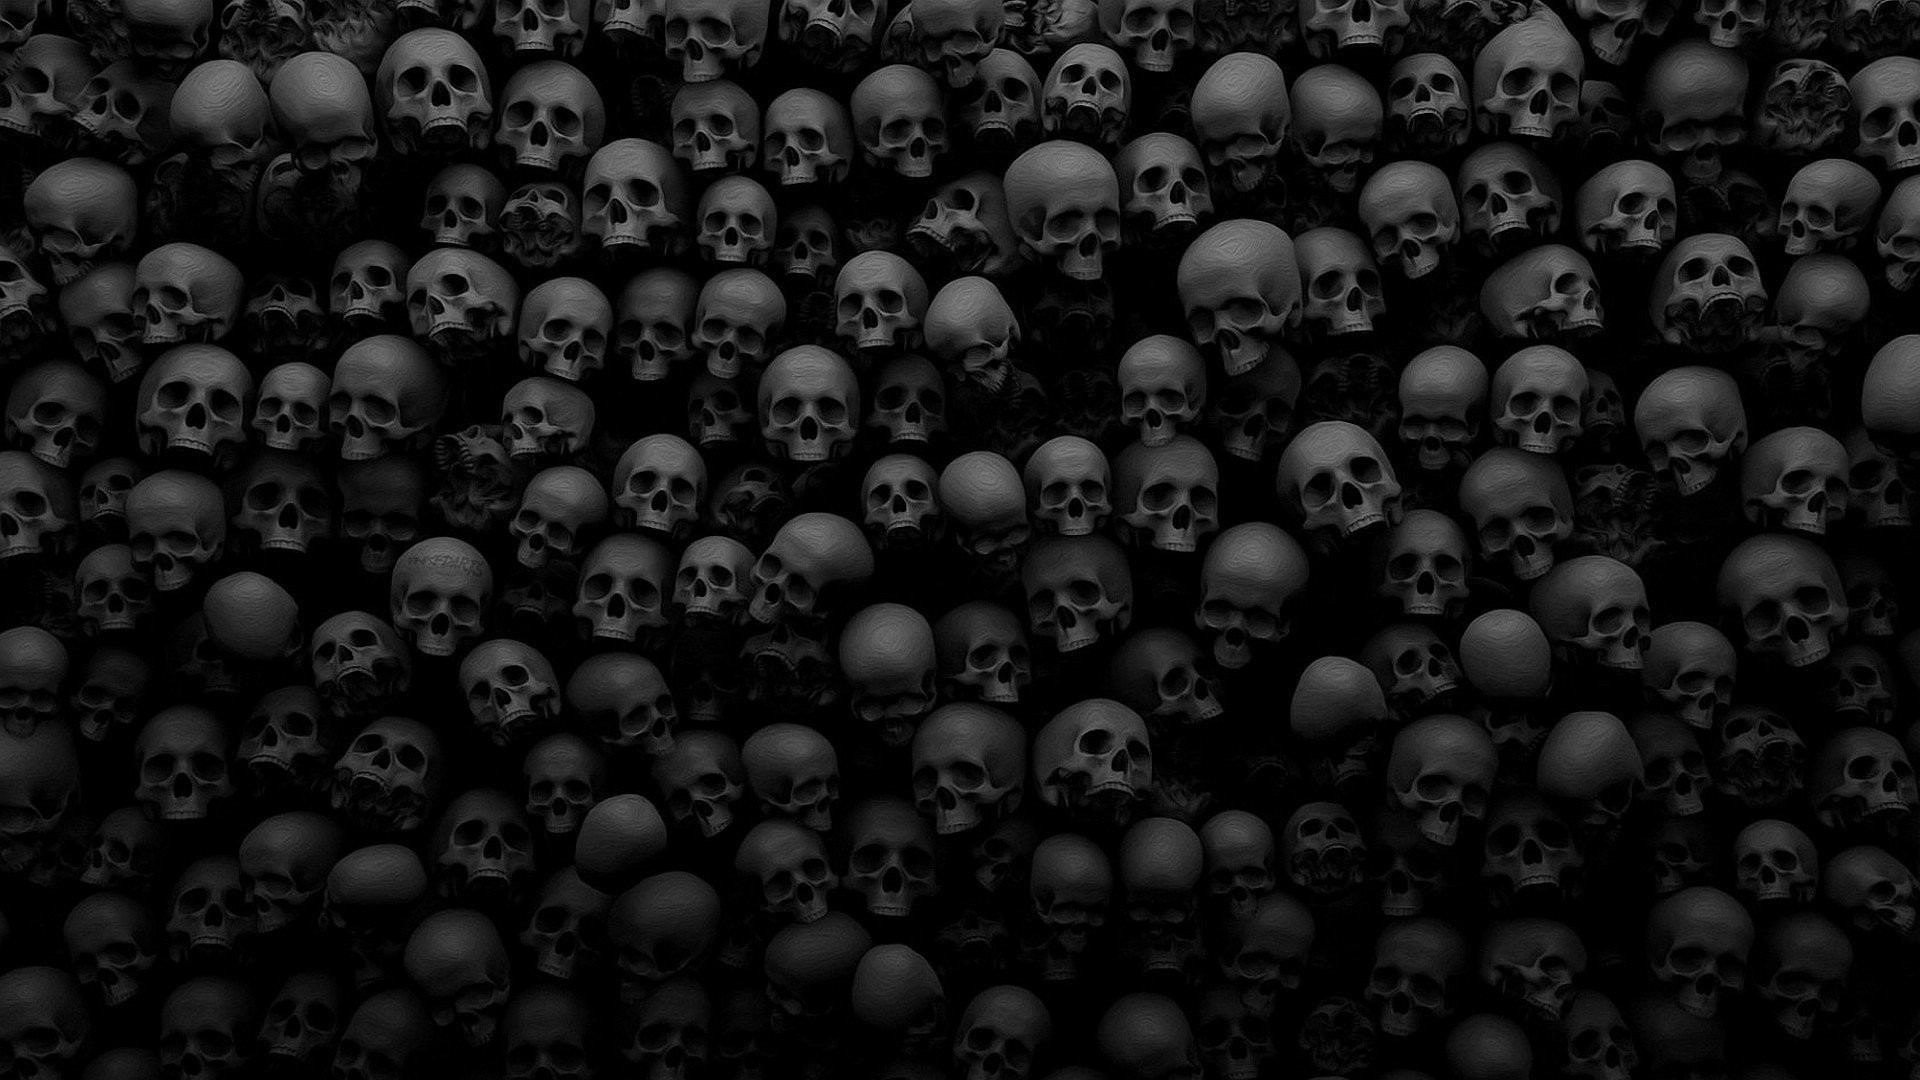 1920x1080 Skull Many Death Background HD Wallpaper